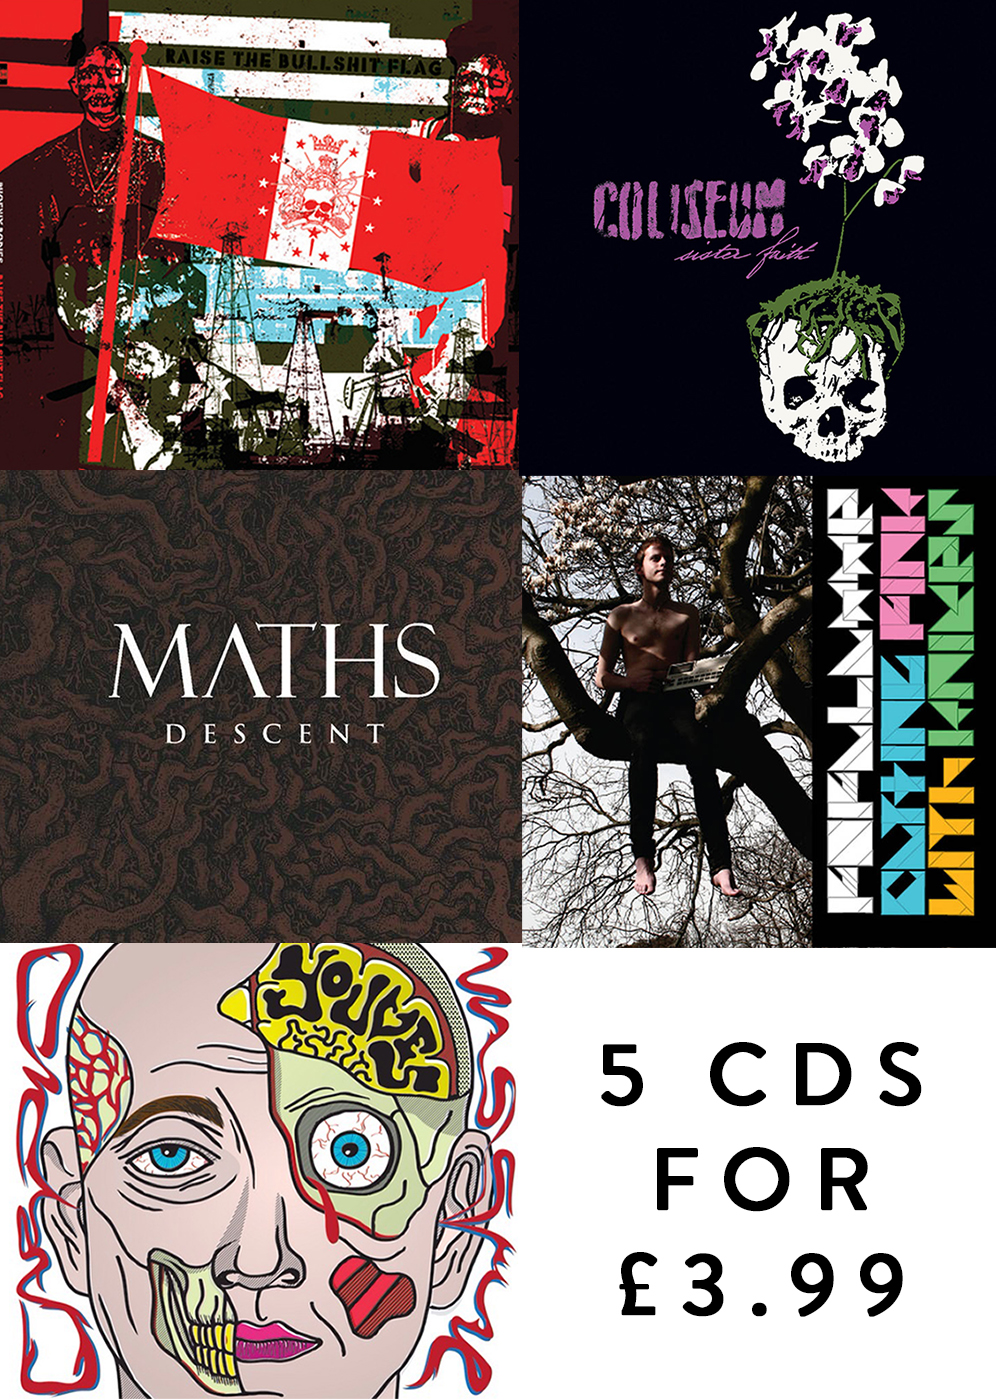 5 CDs for £3.99